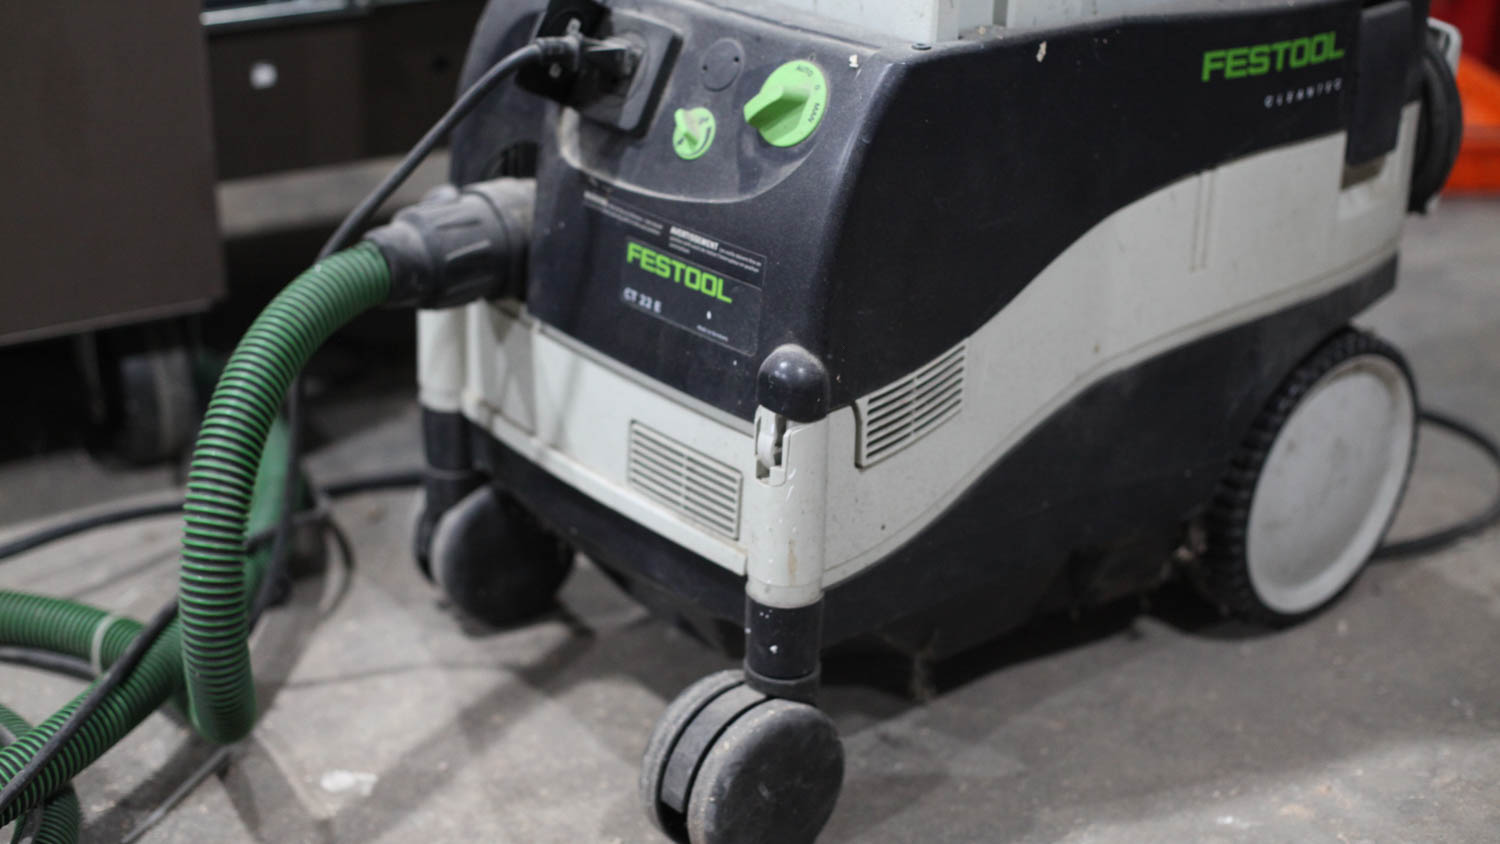 Festool. Period. - Once you buy in to Festool, it's hard to imagine using anything else.